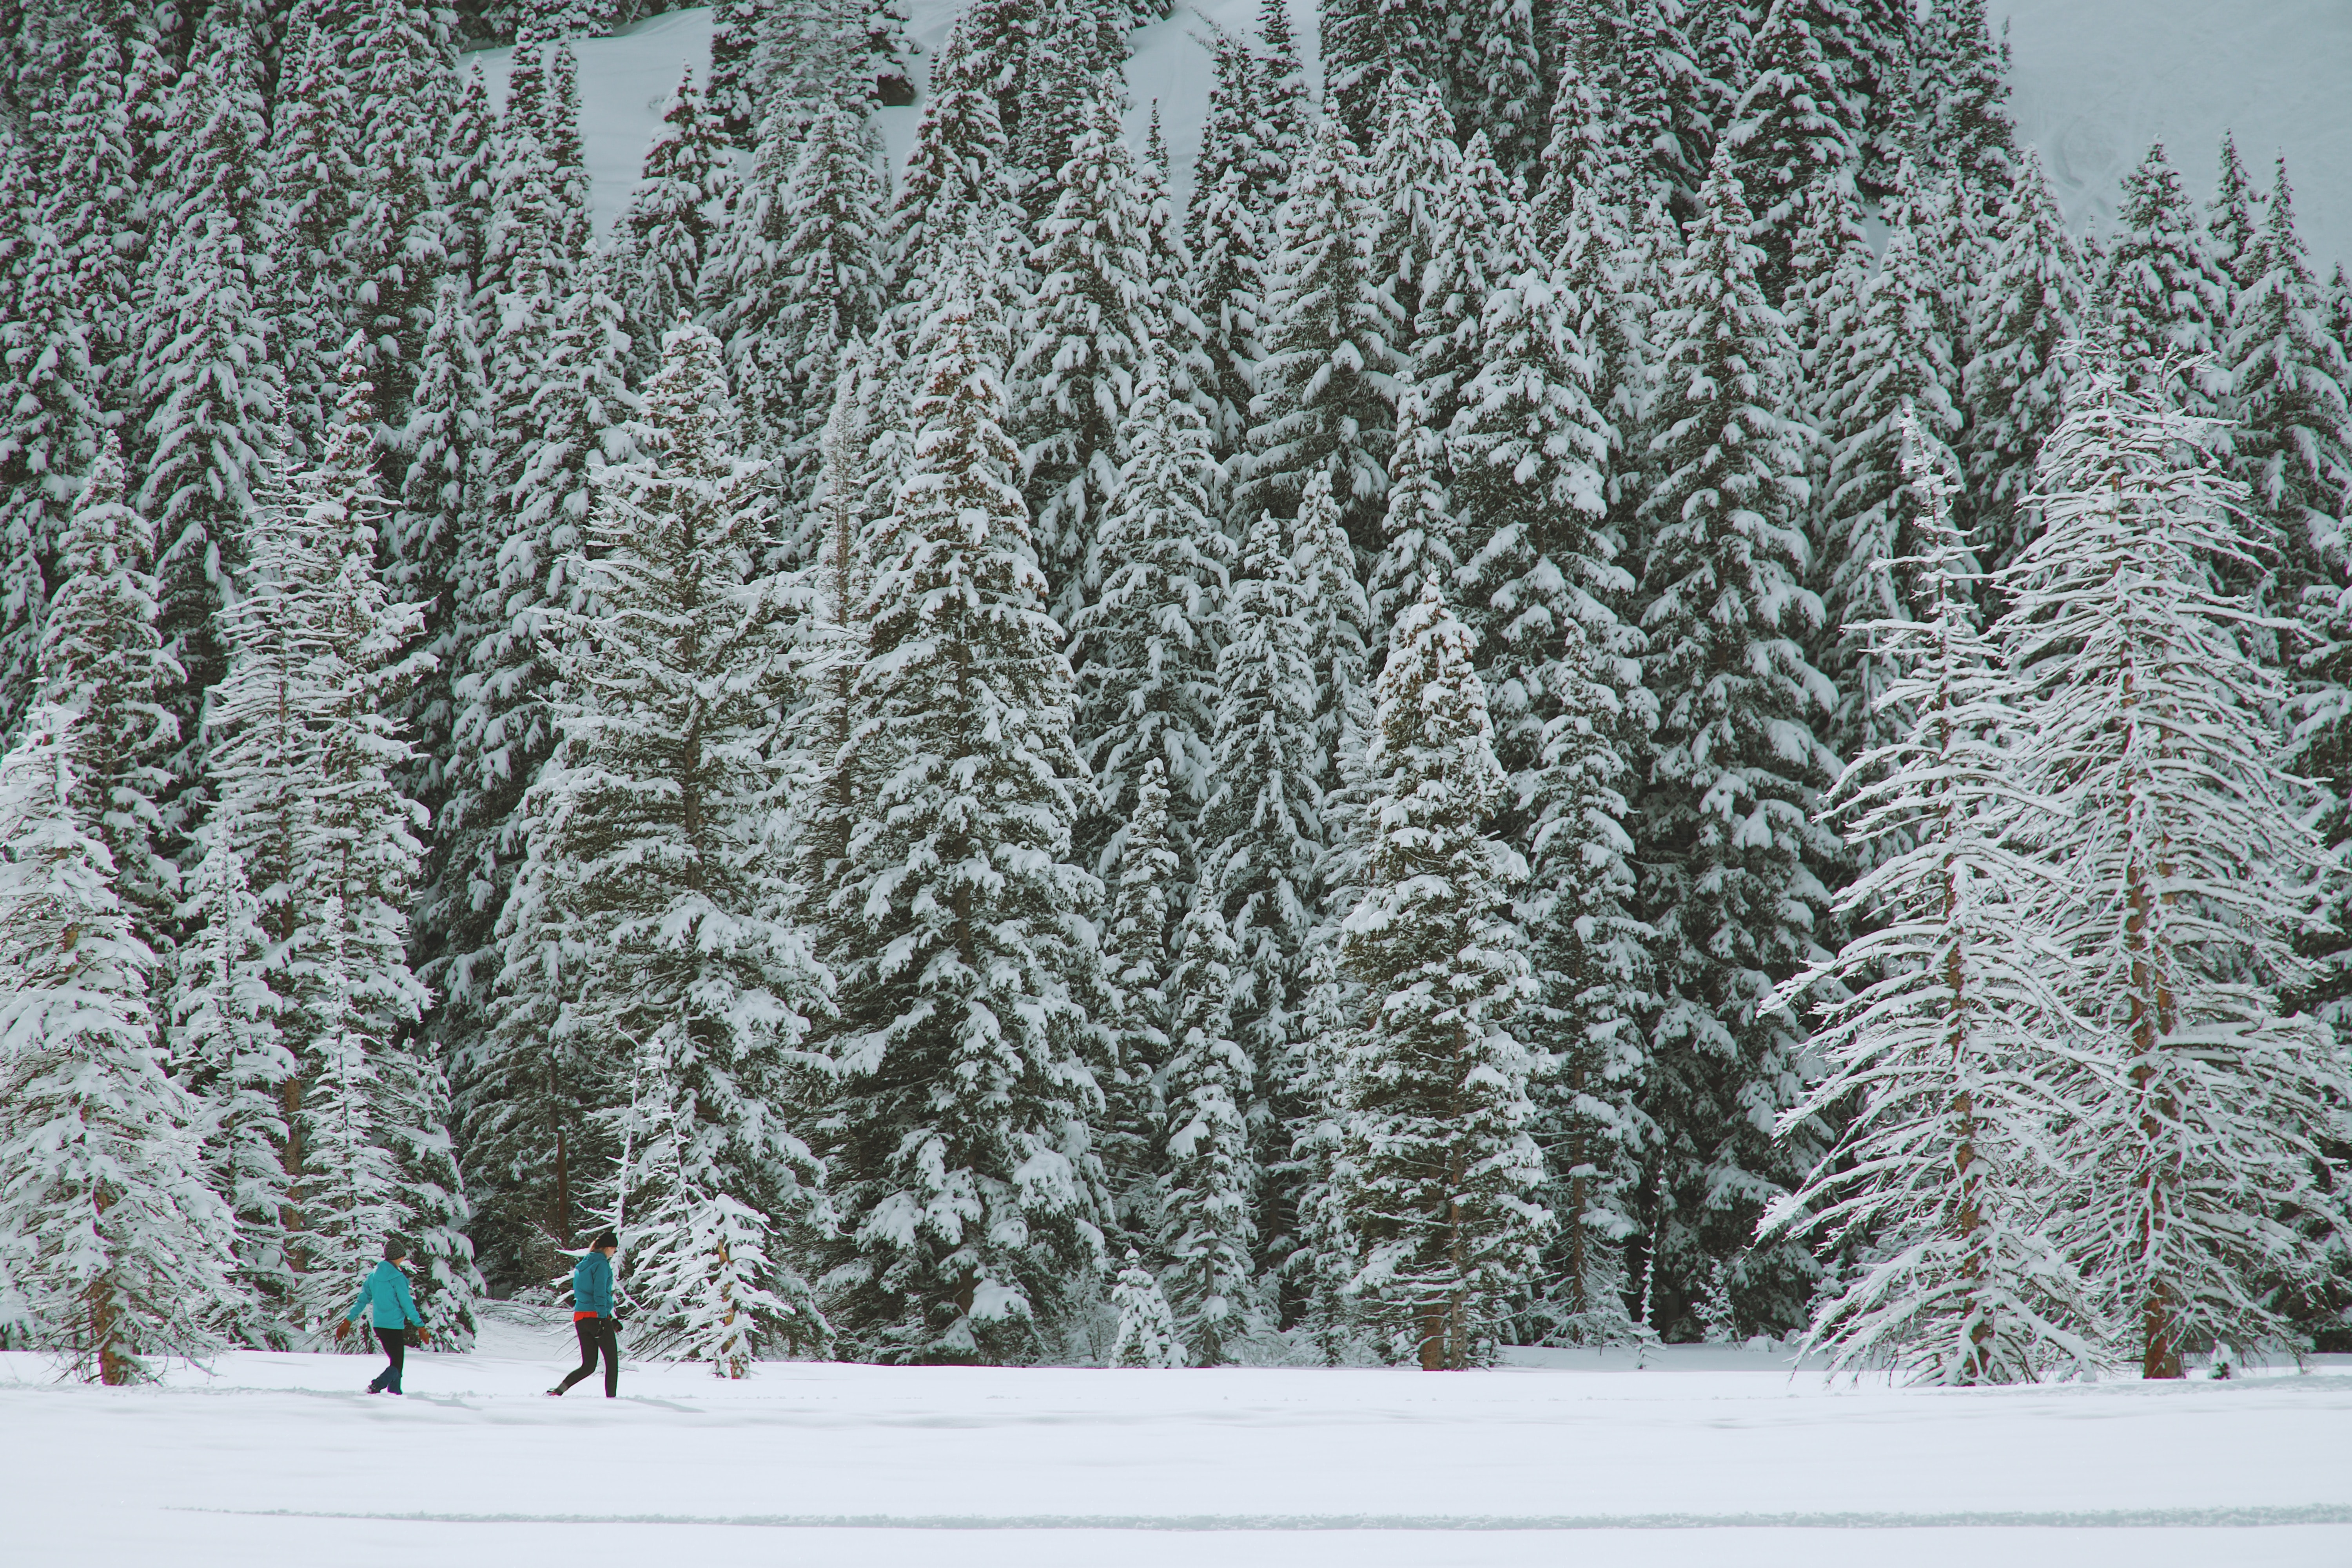 A forestscape shot capturing the tall snow covered trees at Solitude Nordic Center in Utah